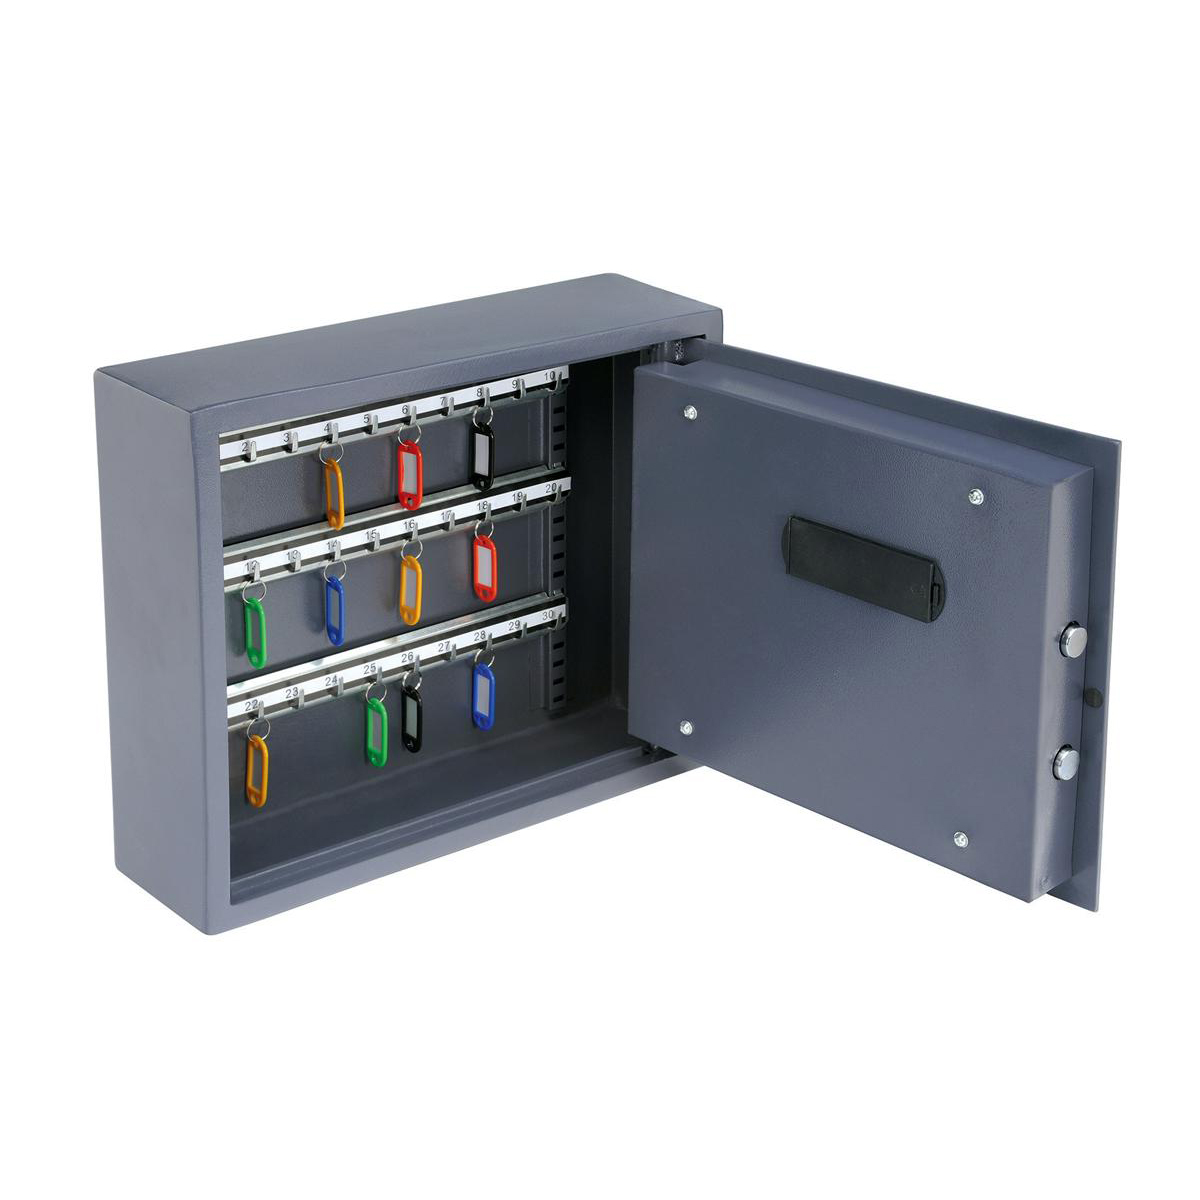 Key Cabinets High Security Key Safe Electronic Key Pad and 30mm Double Bolt Locking 30 Keys